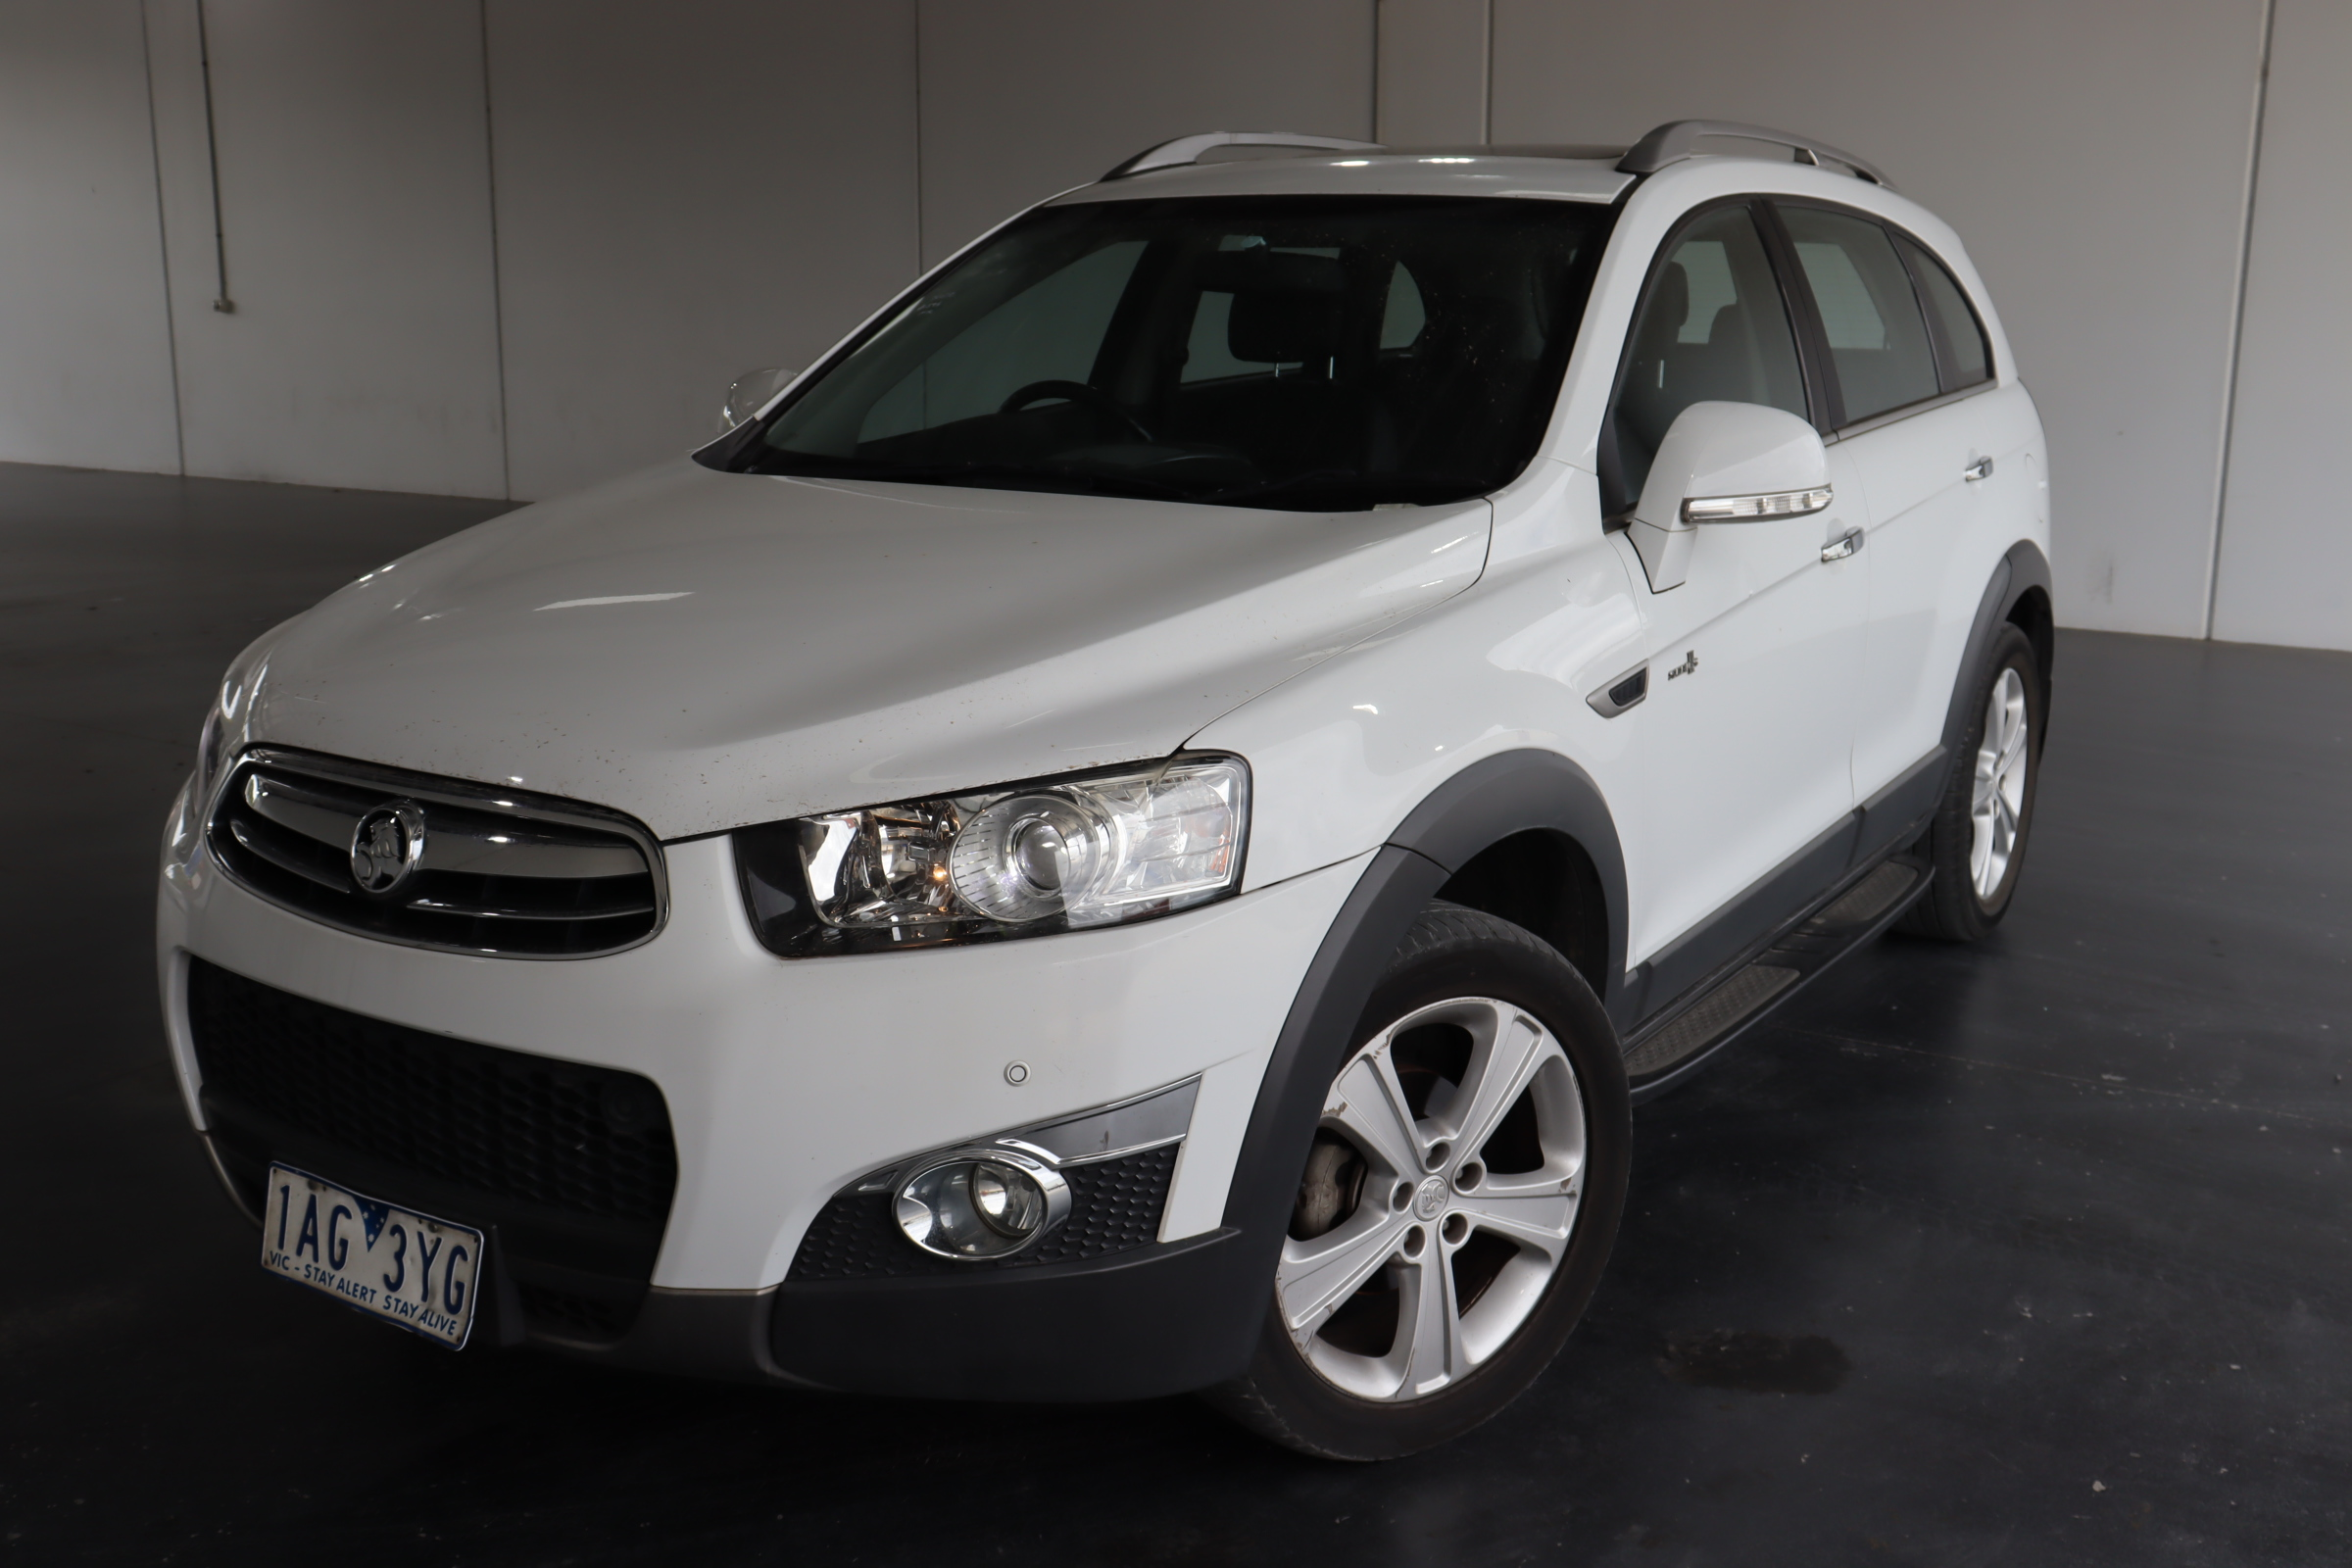 2013 Holden Captiva 7 LX AWD CG II Turbo Diesel Automatic 7 Seats Wagon